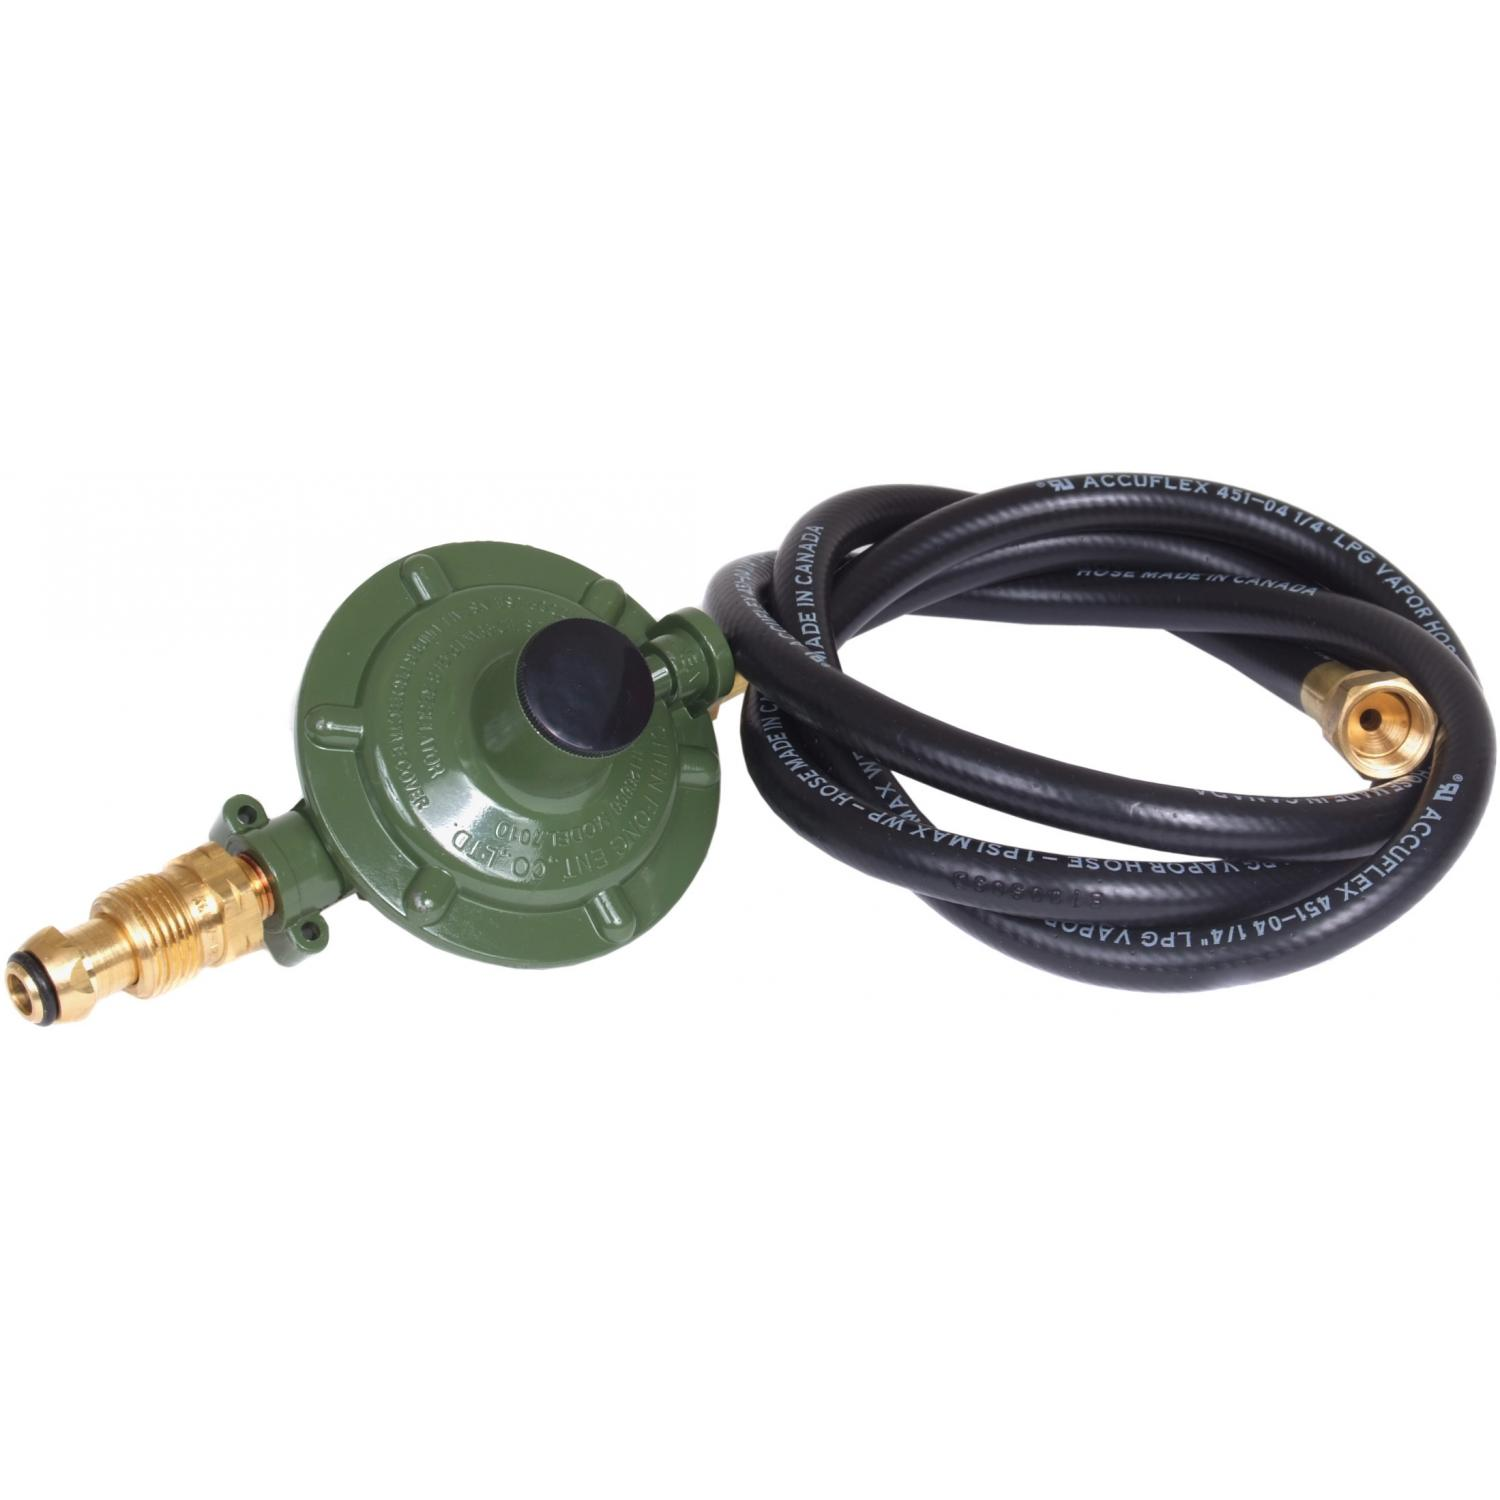 Five Foot Propane Hose And Low Pressure Regulator